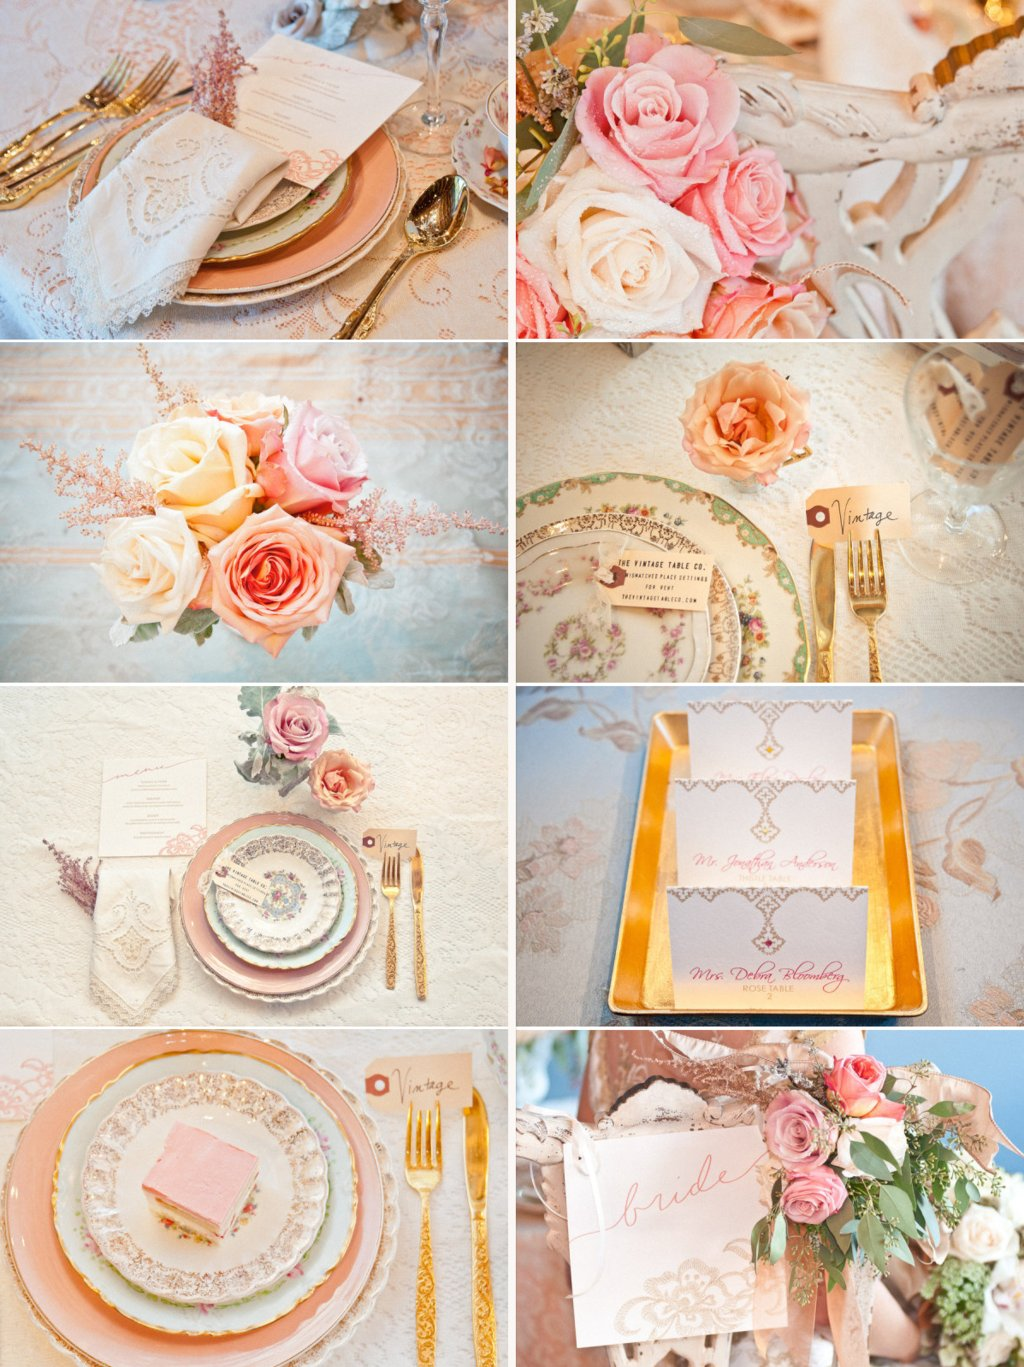 Wedding-color-inspiration-gold-peach-cream.full